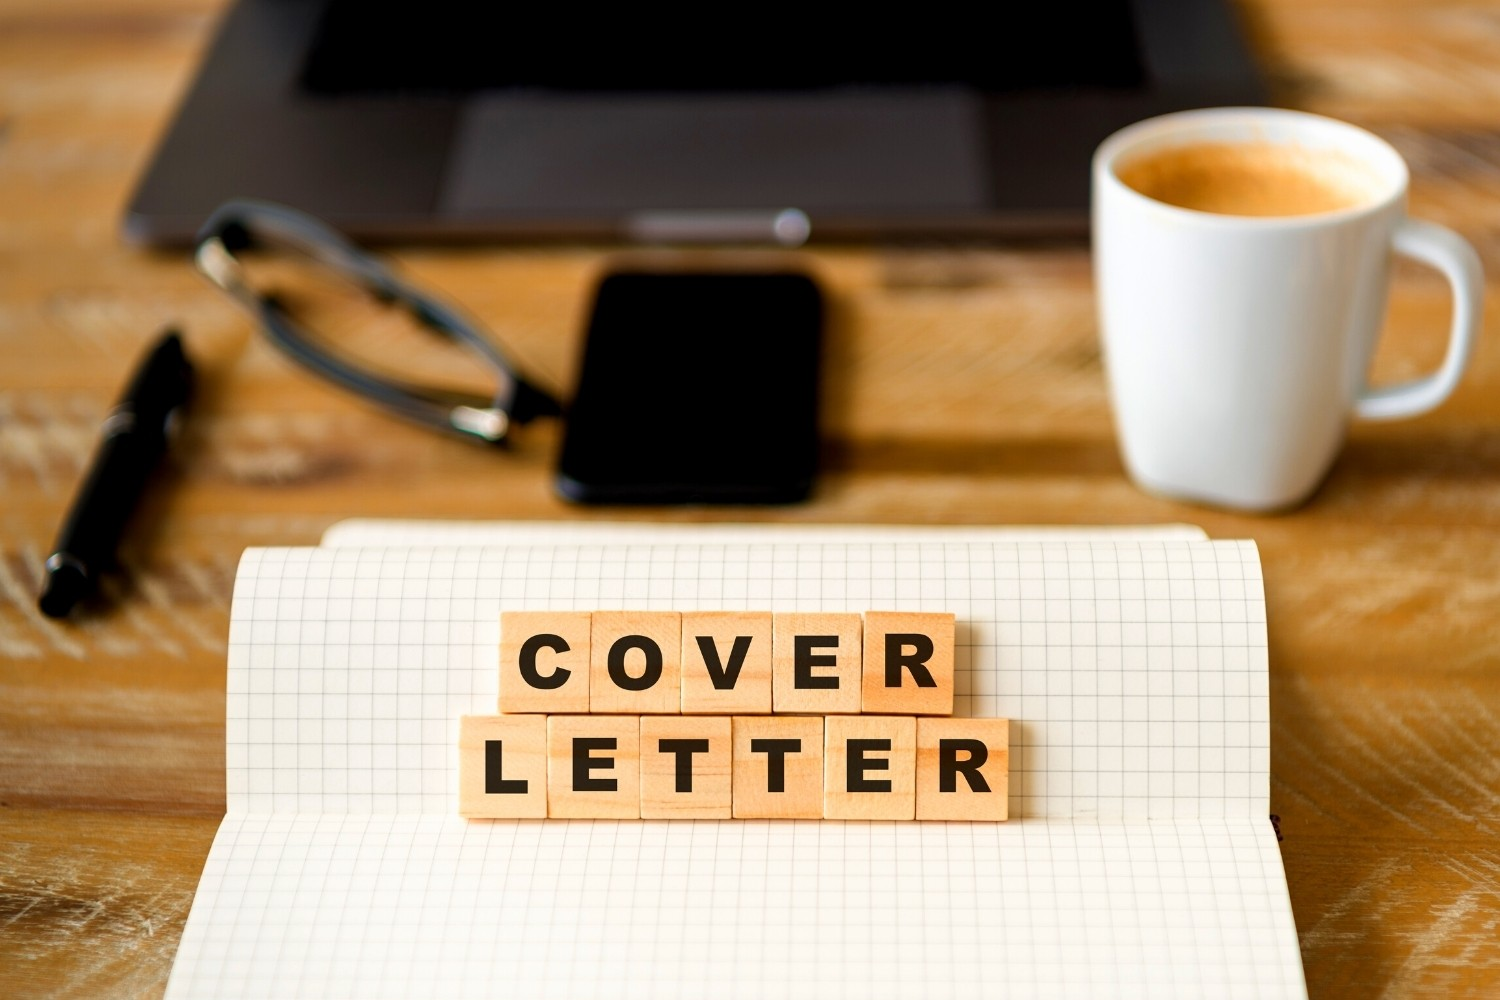 What Is the Purpose of a Cover Letter When Applying for a Job